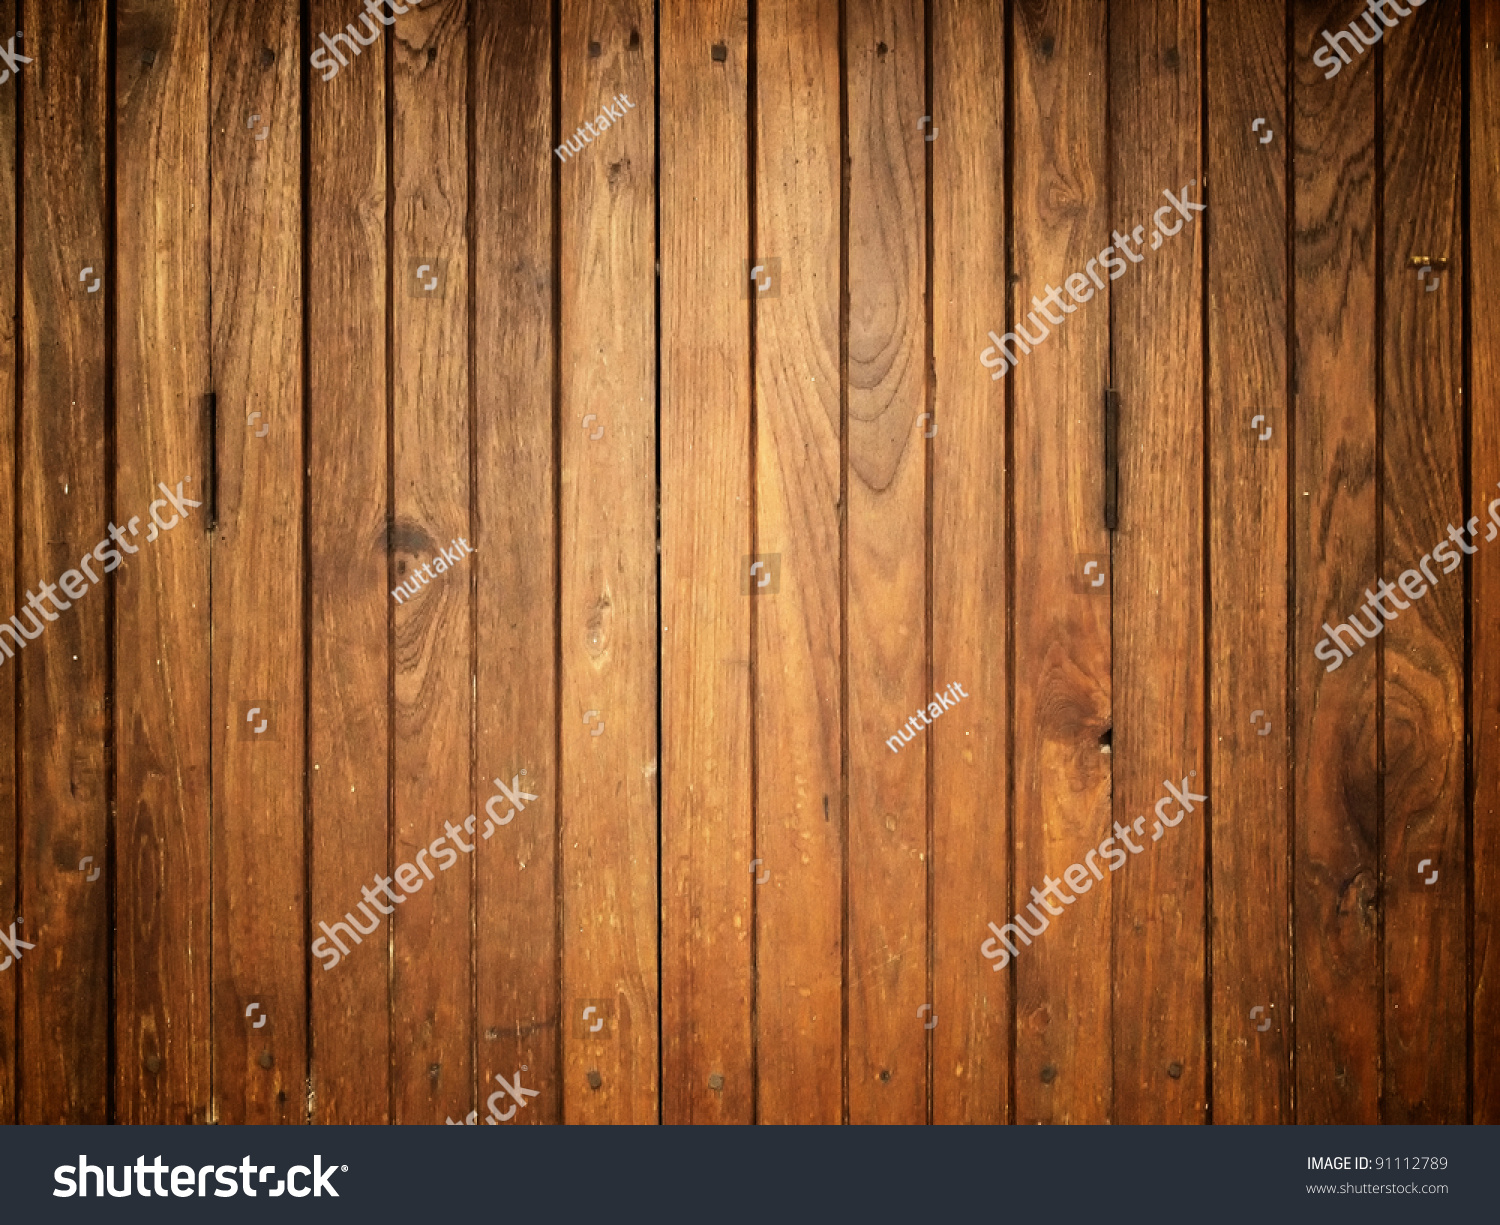 Old Wood Texture Web Background Stock Photo 91112789 - Shutterstock